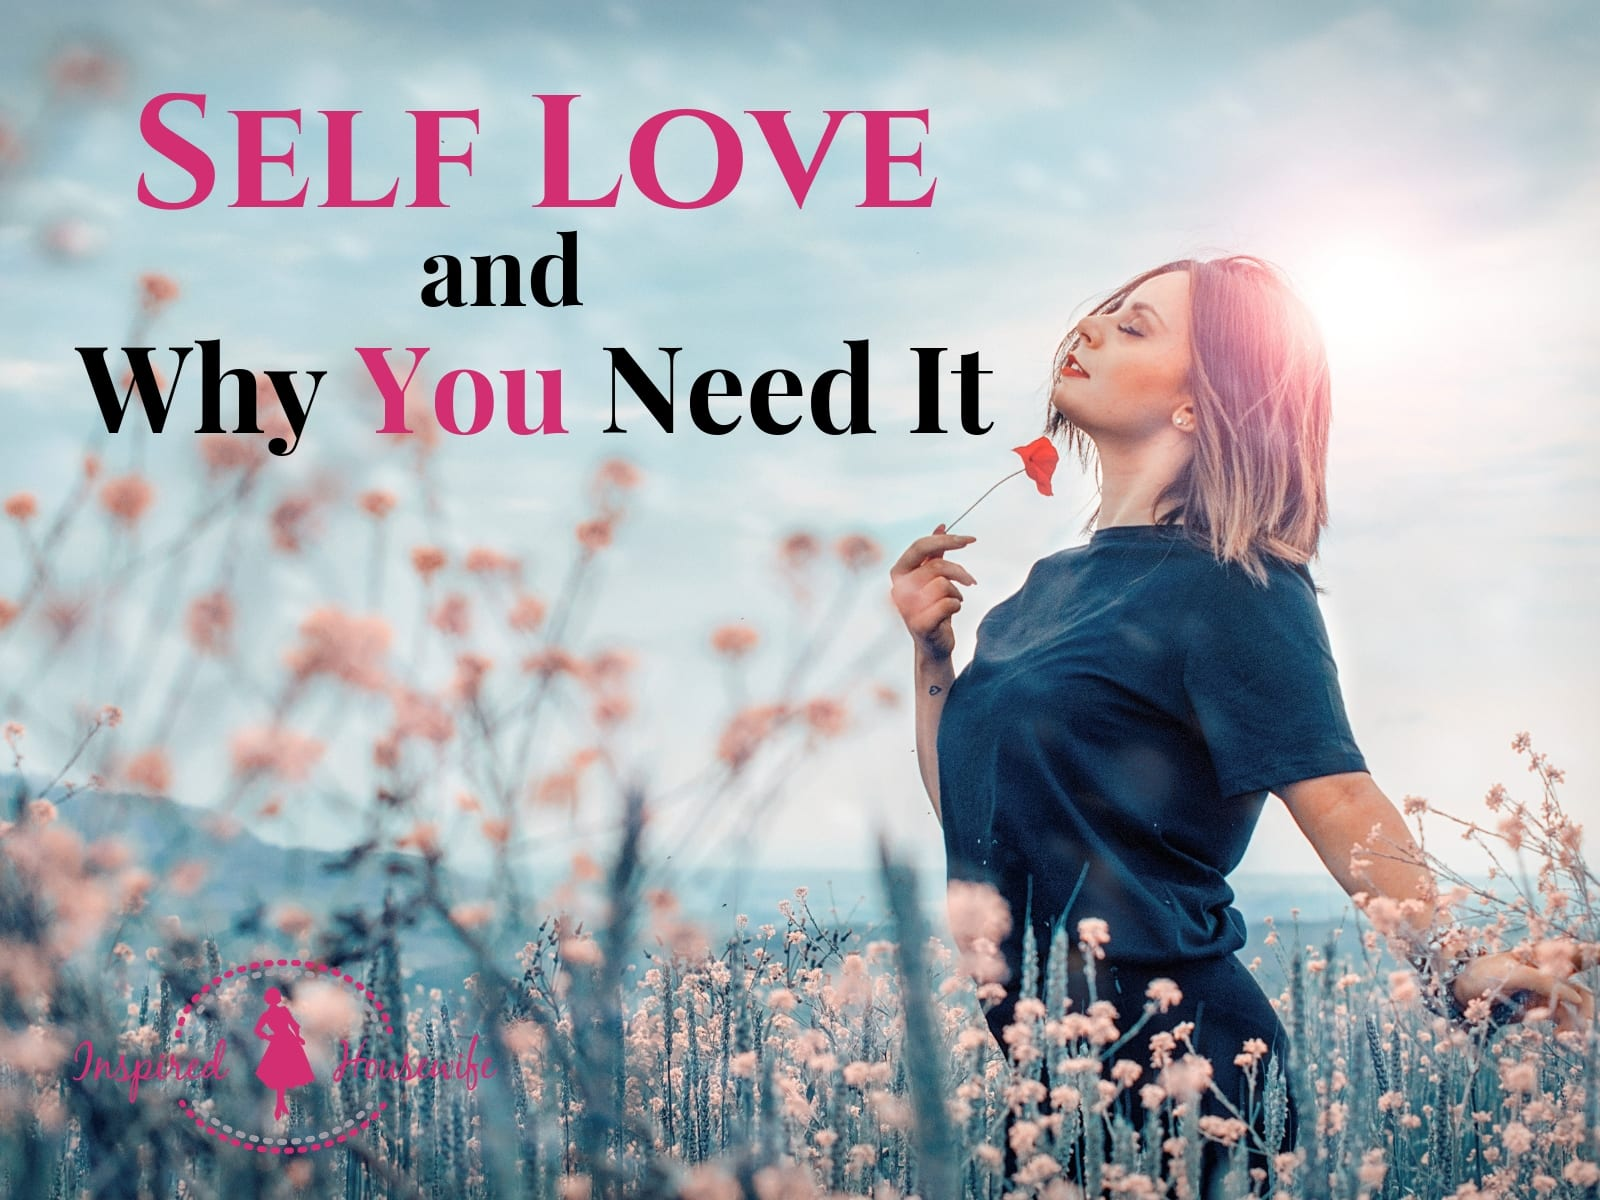 Self Love and Why You Need It